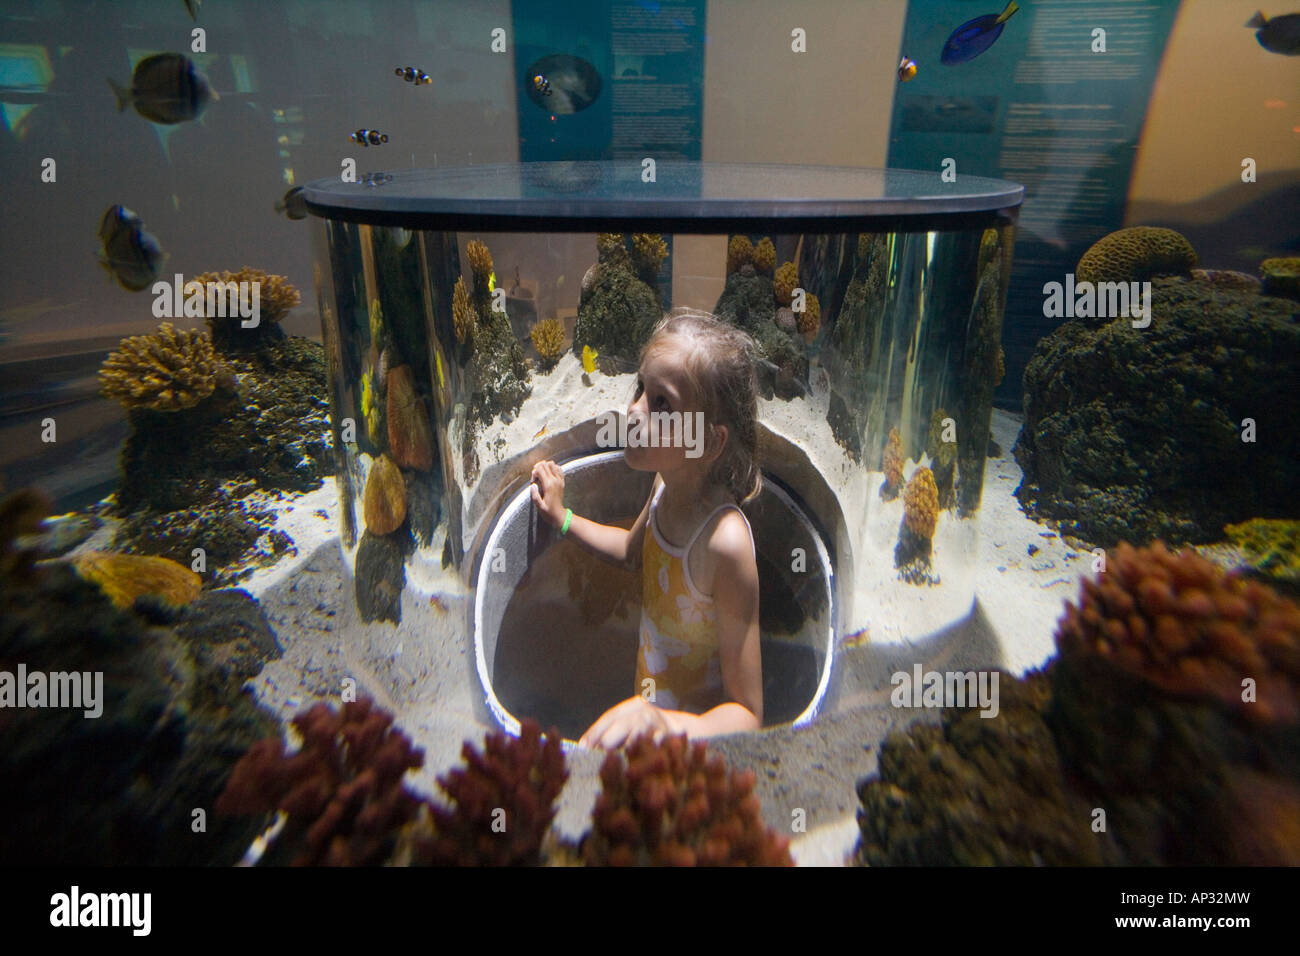 Girl admiring fishes in Atlantis Aquarium Attraction, Legoland, Billund, Central Jutland, Denmark - Stock Image